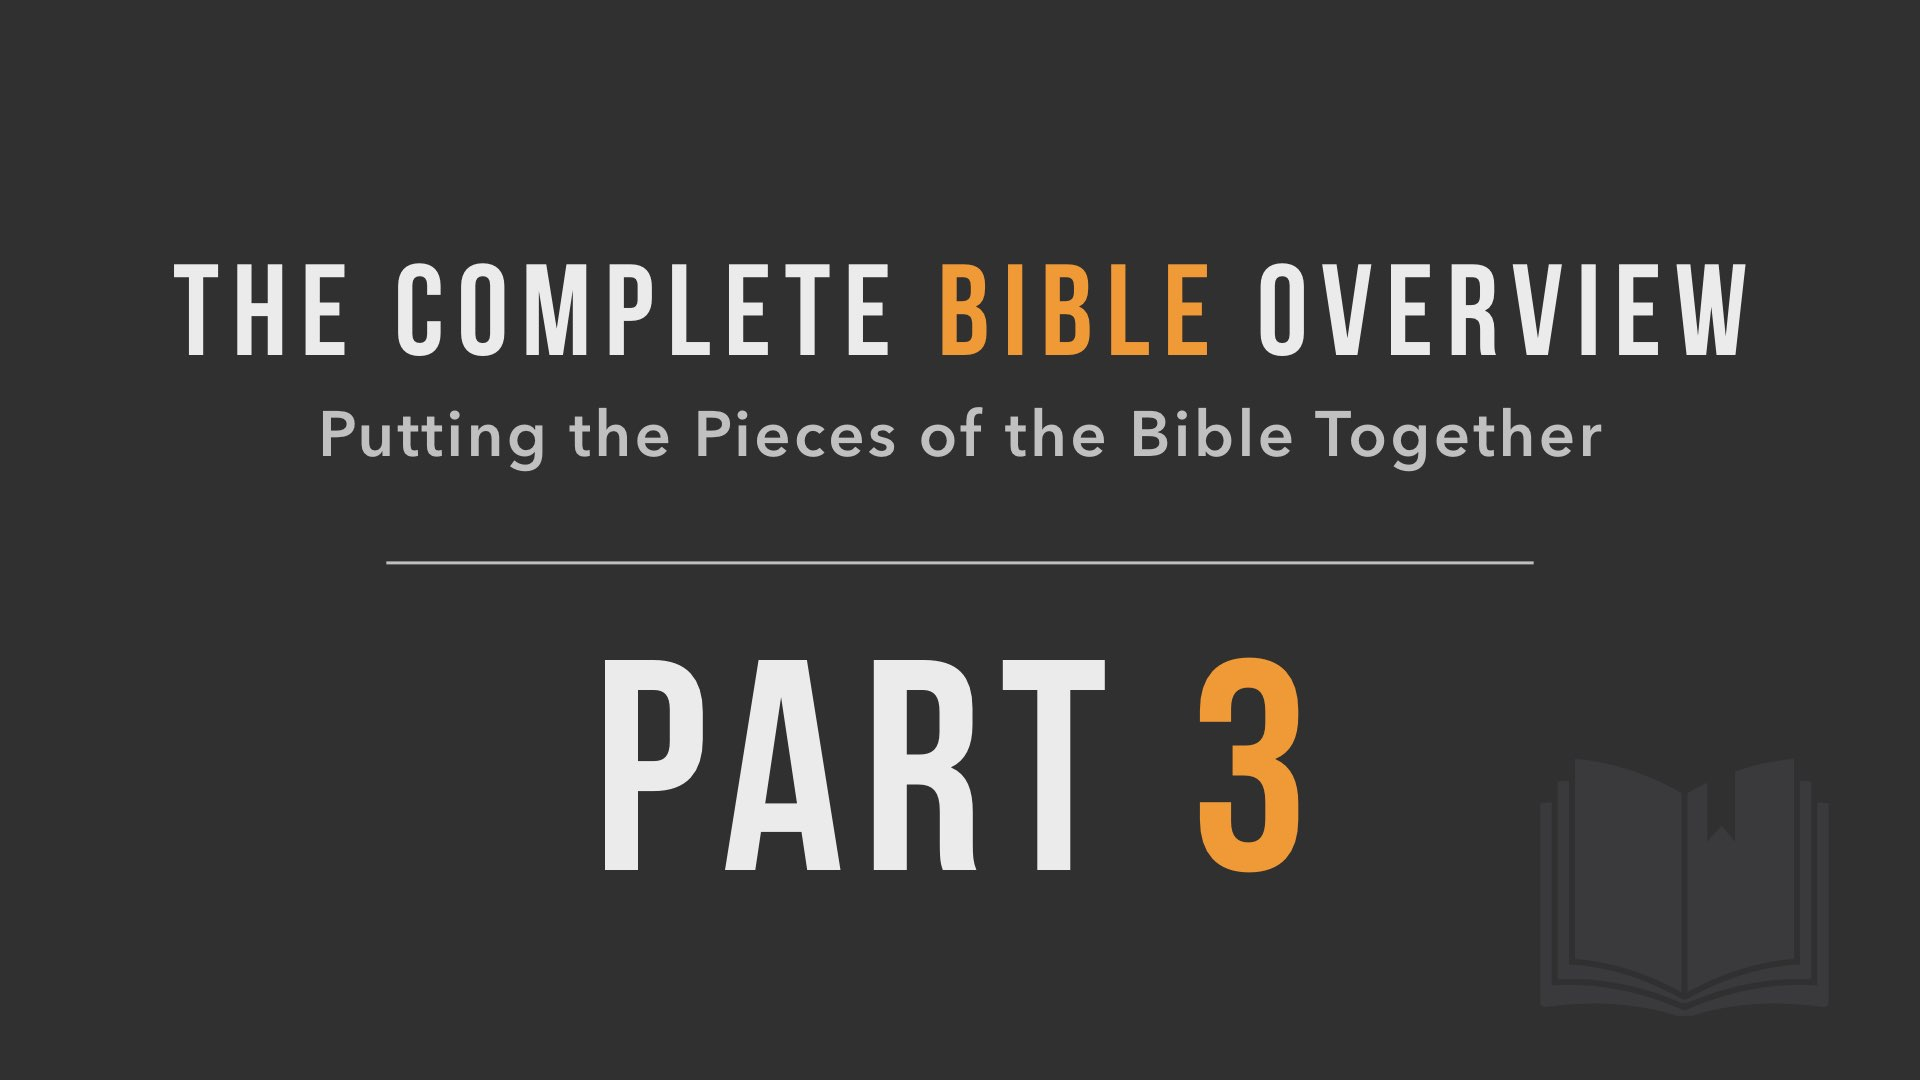 The Complete Bible Overview Part 3